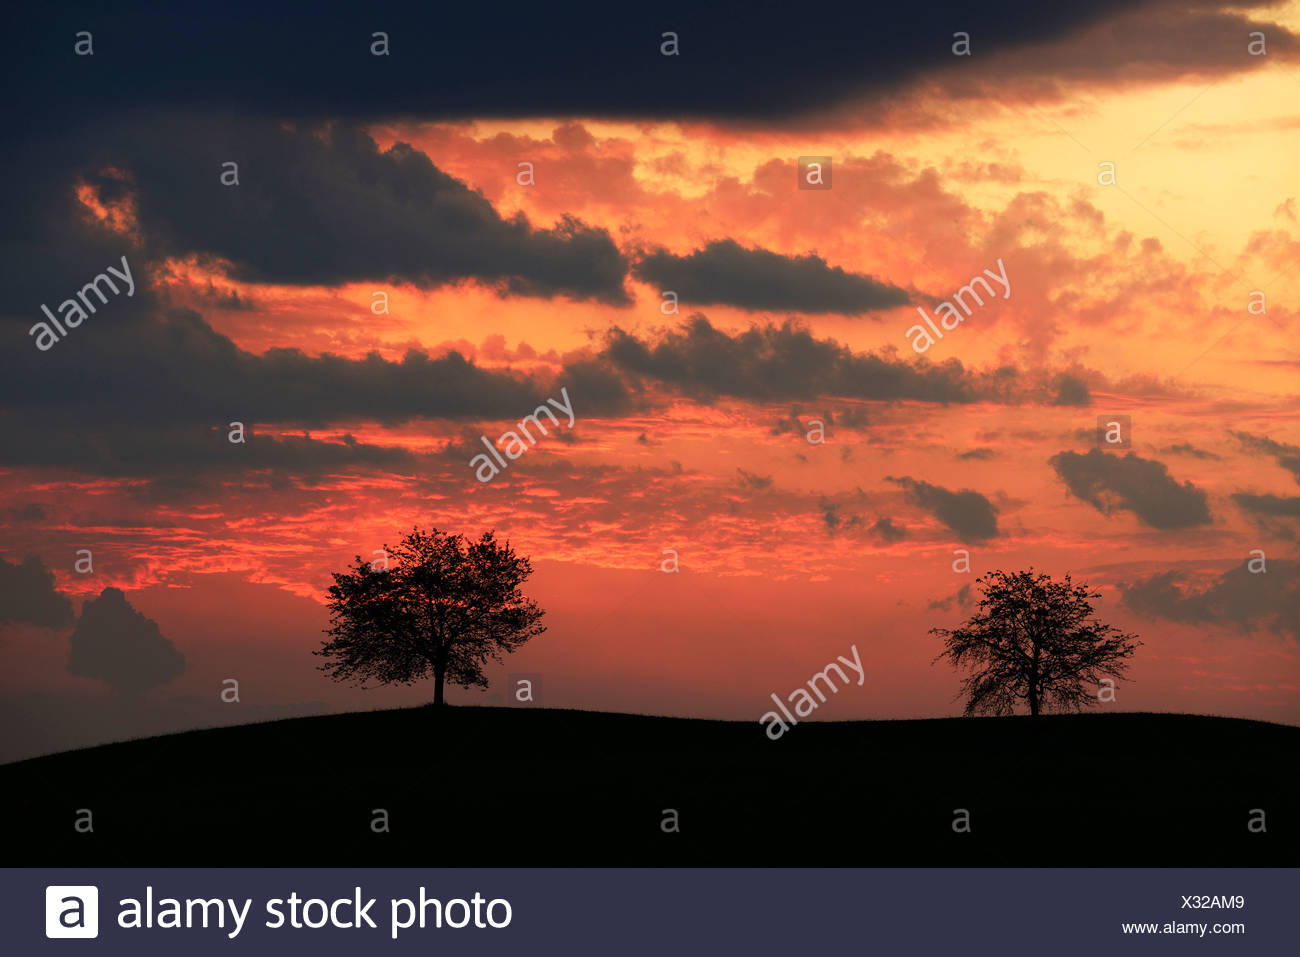 Trees silhouetted against a sky full of storm clouds - Stock Image